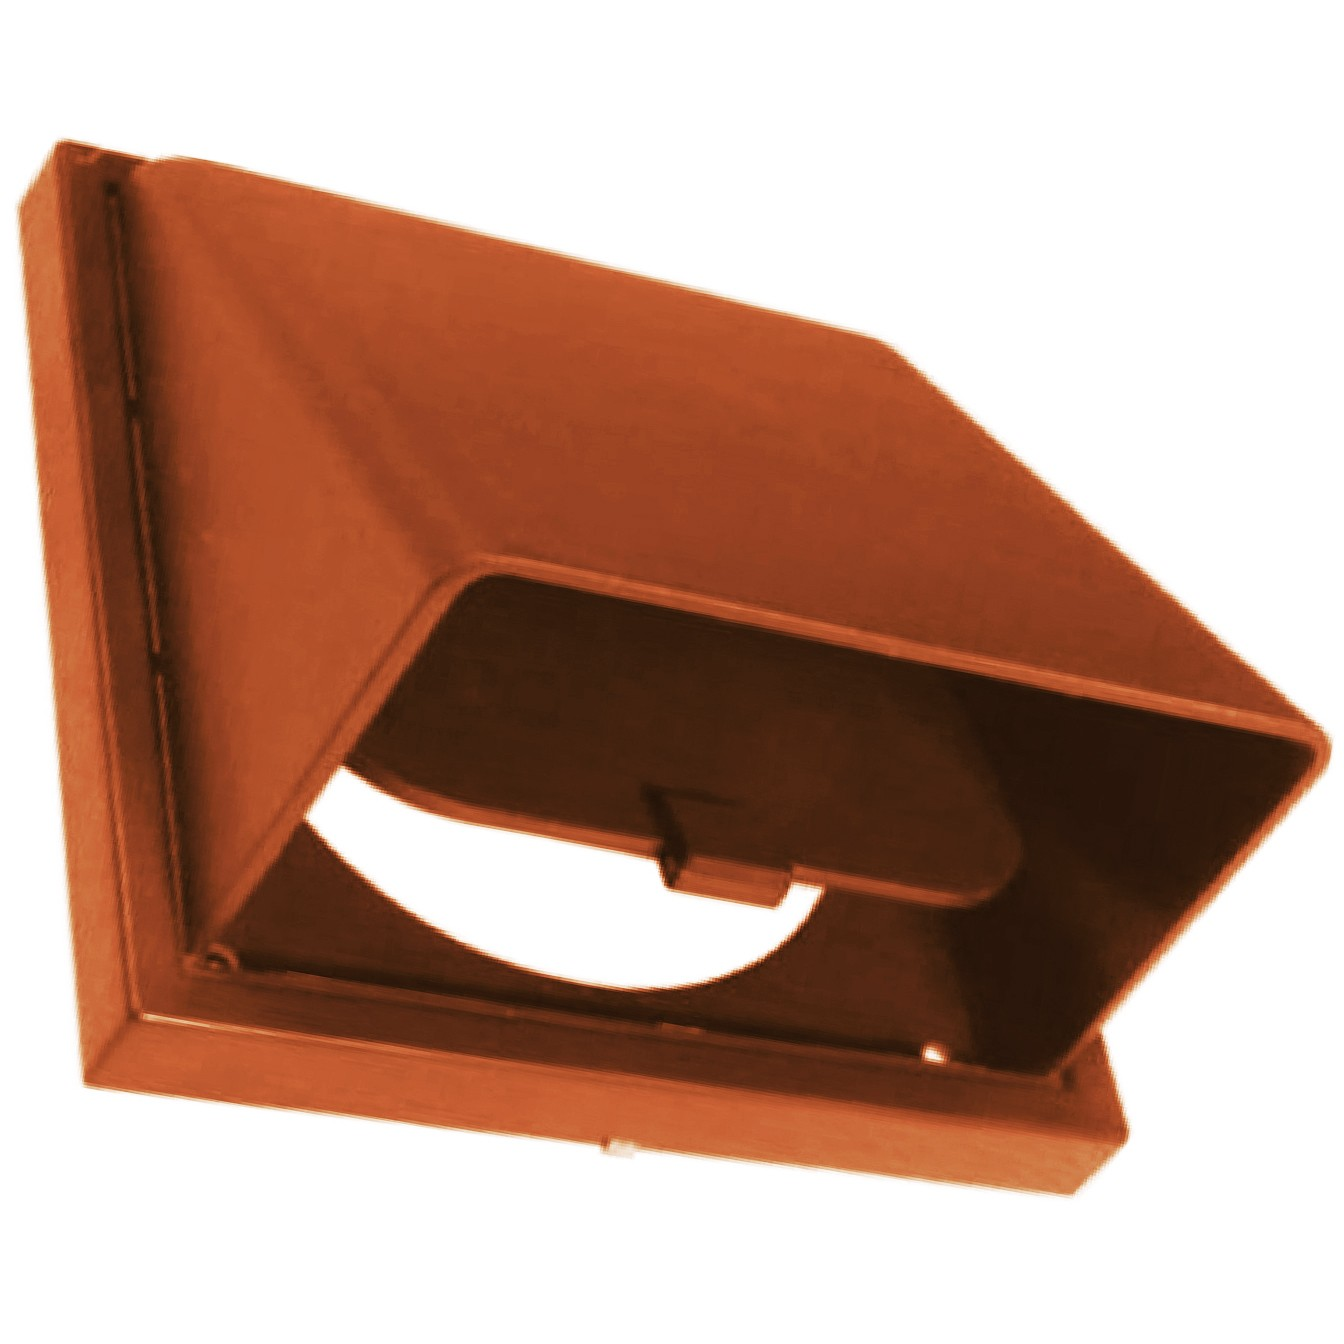 Manrose Round Ducting Pipe Wall Hood Cowled Outlet - Terracotta, 125mm